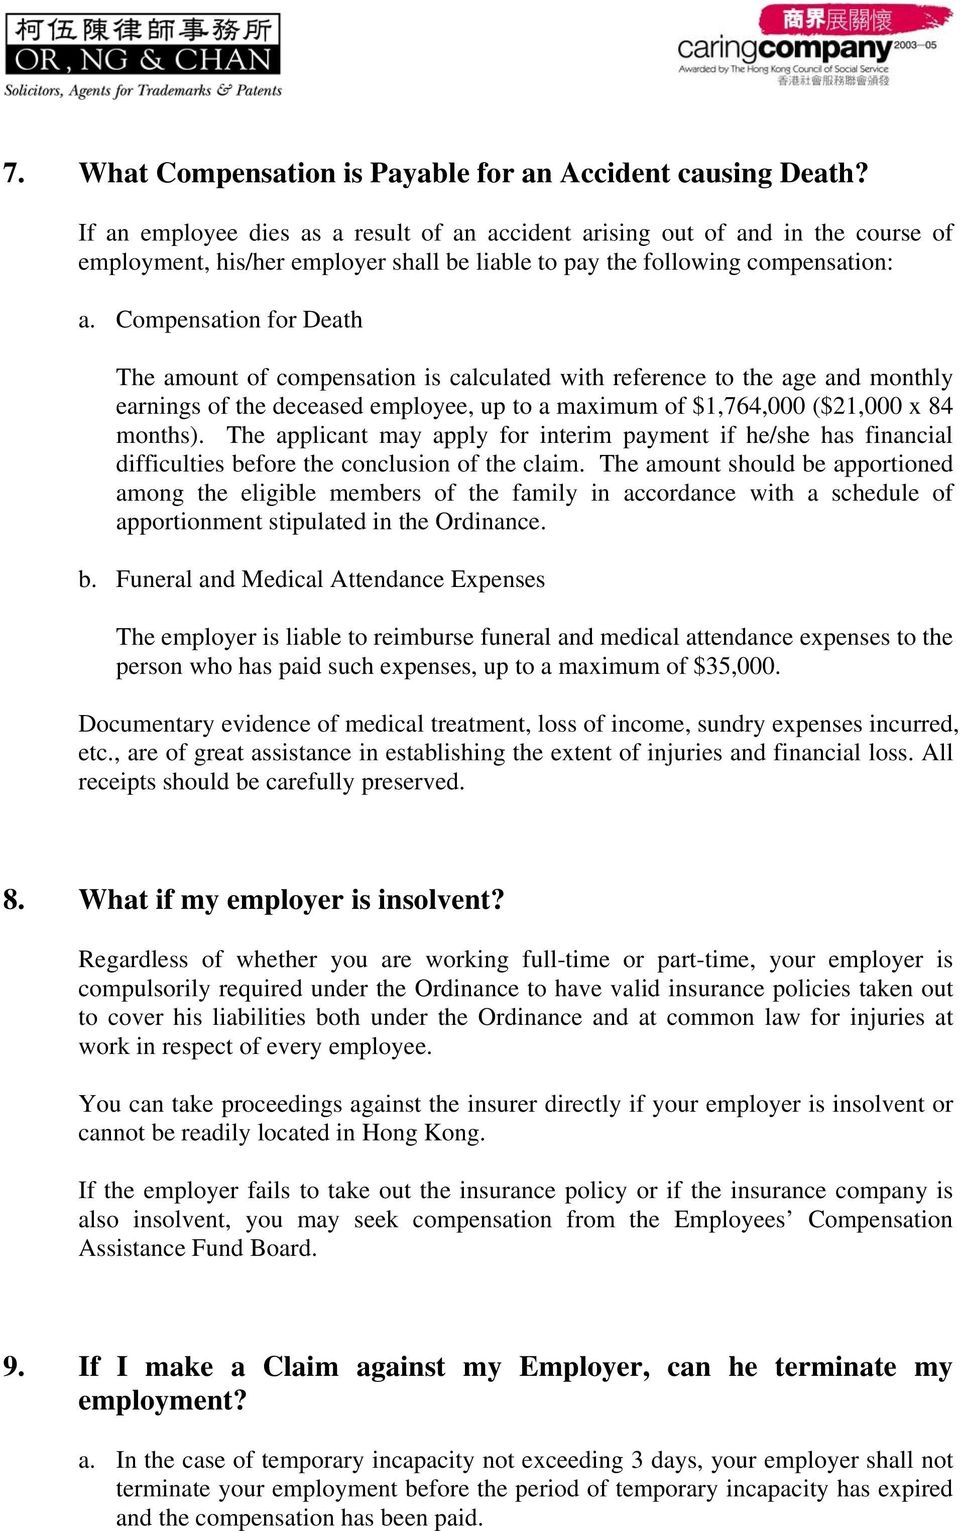 Compensation for Death The amount of compensation is calculated with reference to the age and monthly earnings of the deceased employee, up to a maximum of $1,764,000 ($21,000 x 84 months).